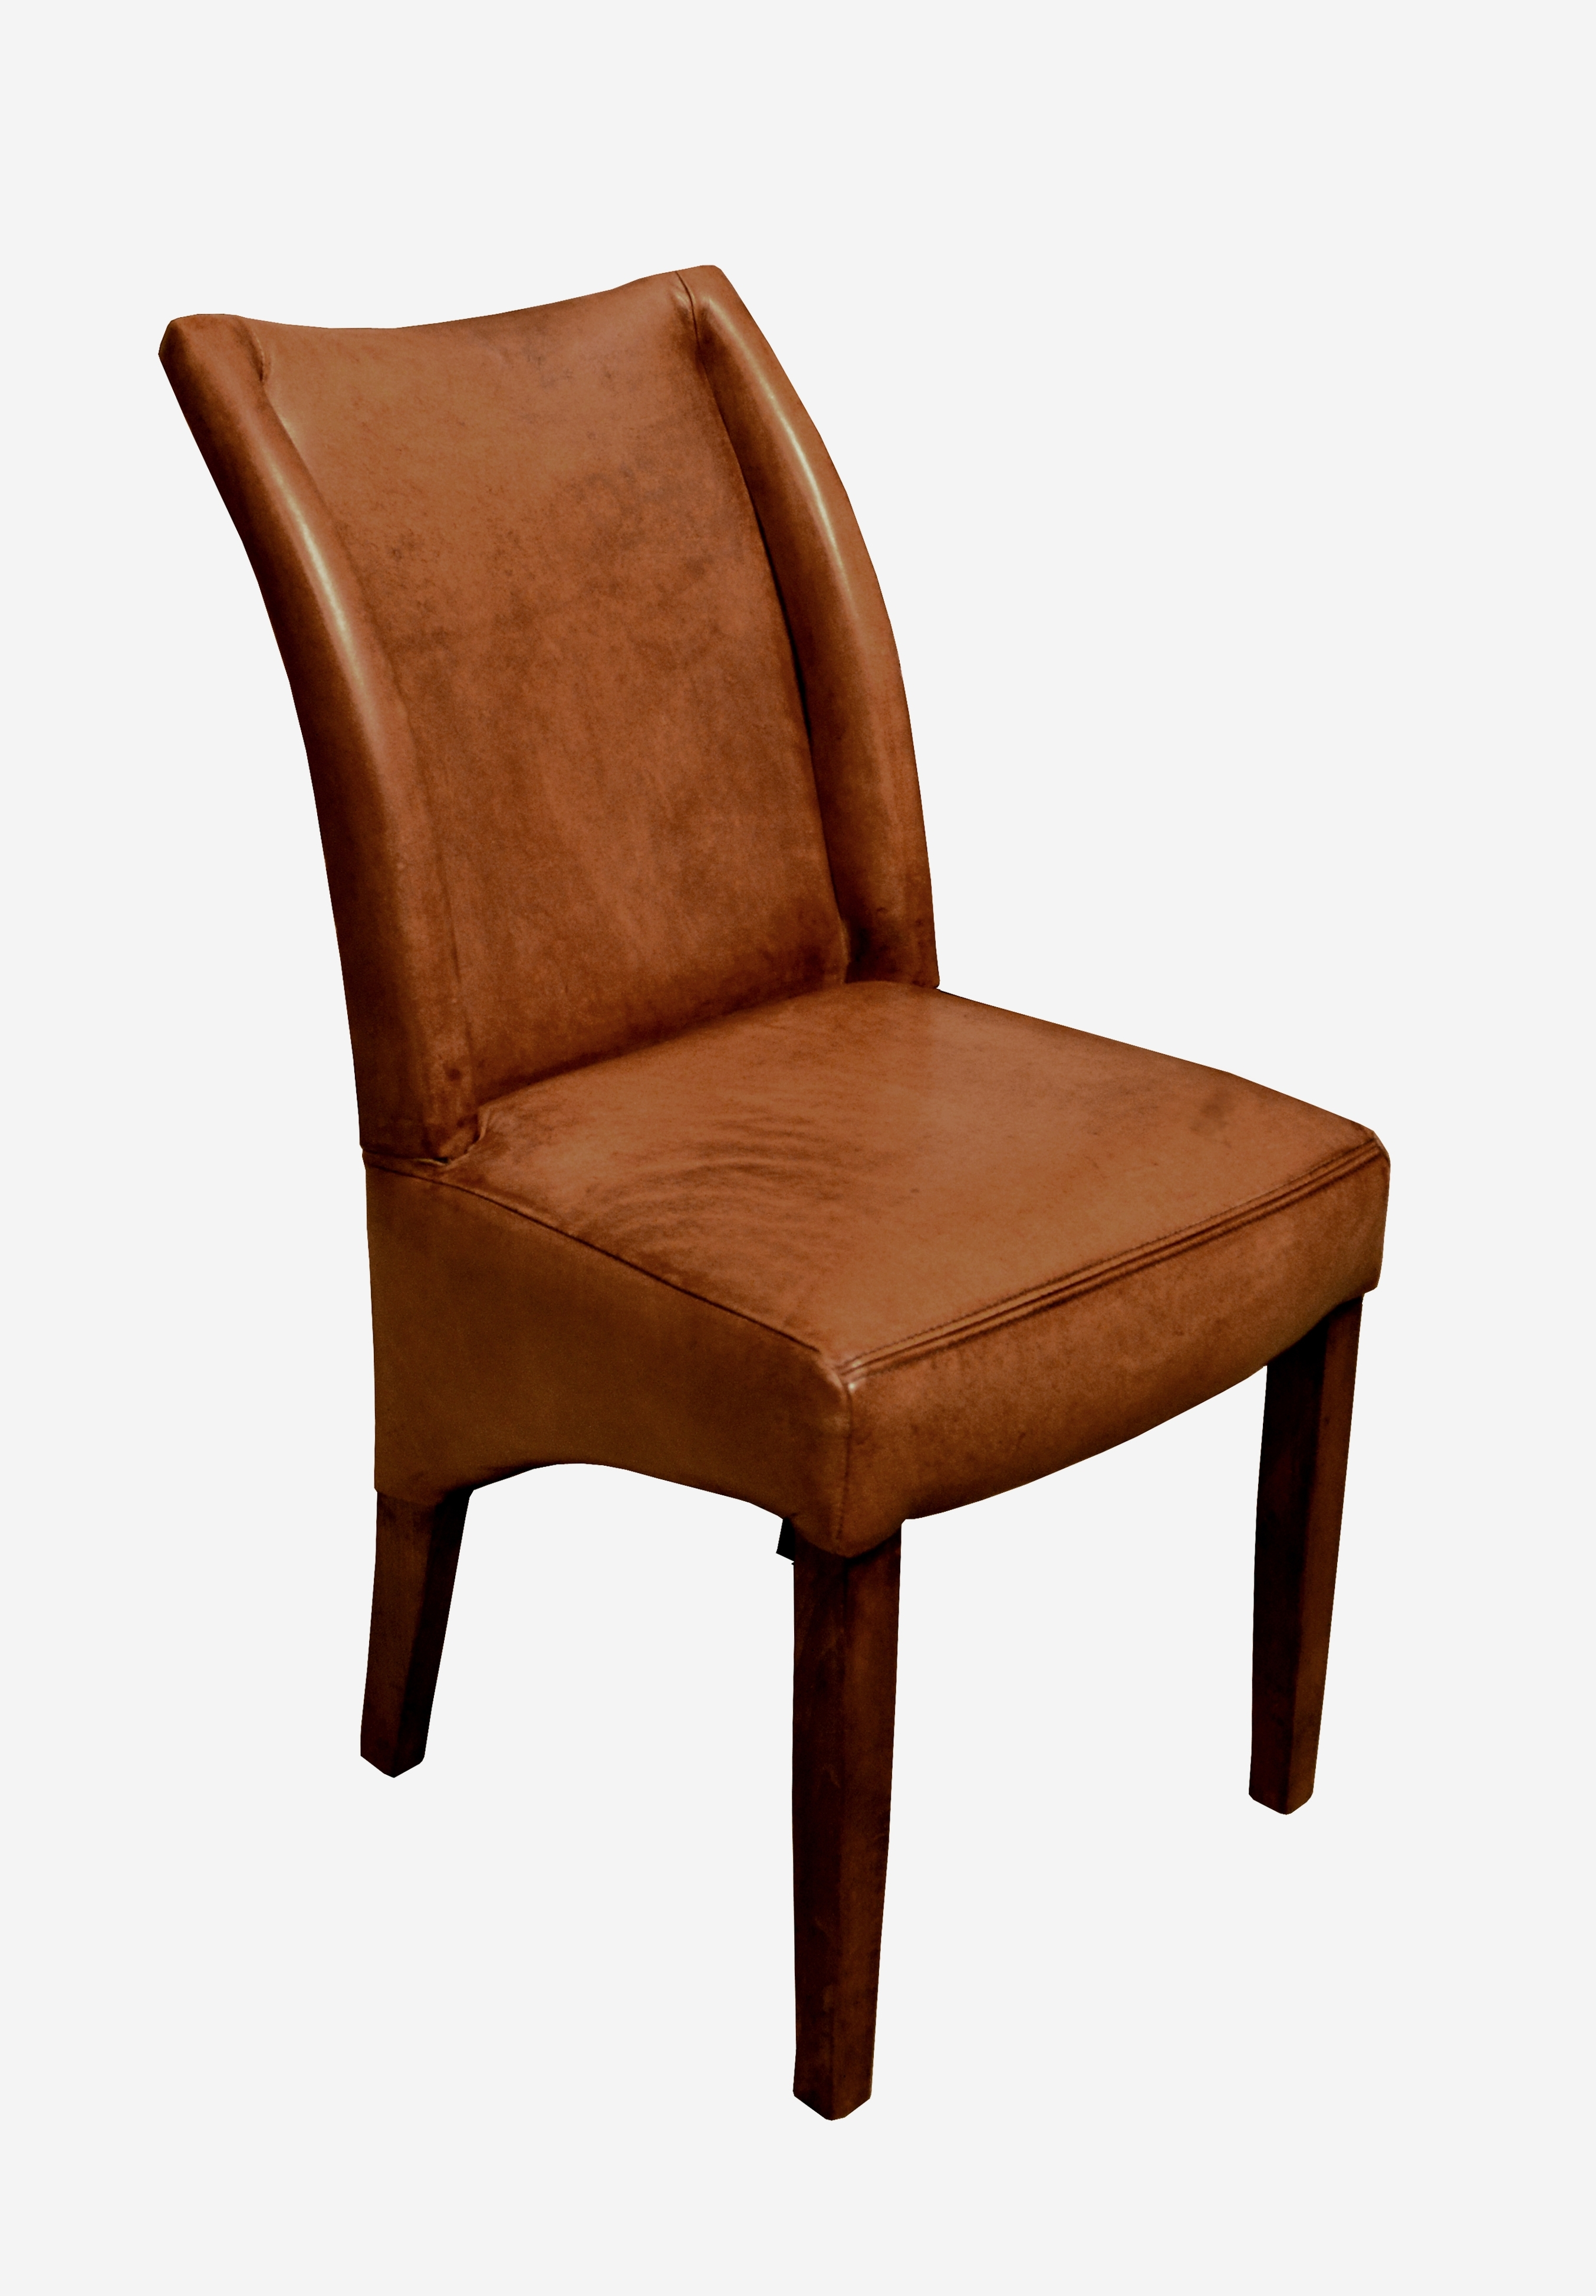 Most Current Faux Leather Mayfair High Back Dining Chair Modern Wood Dining Chairs In High Back Leather Dining Chairs (View 16 of 25)